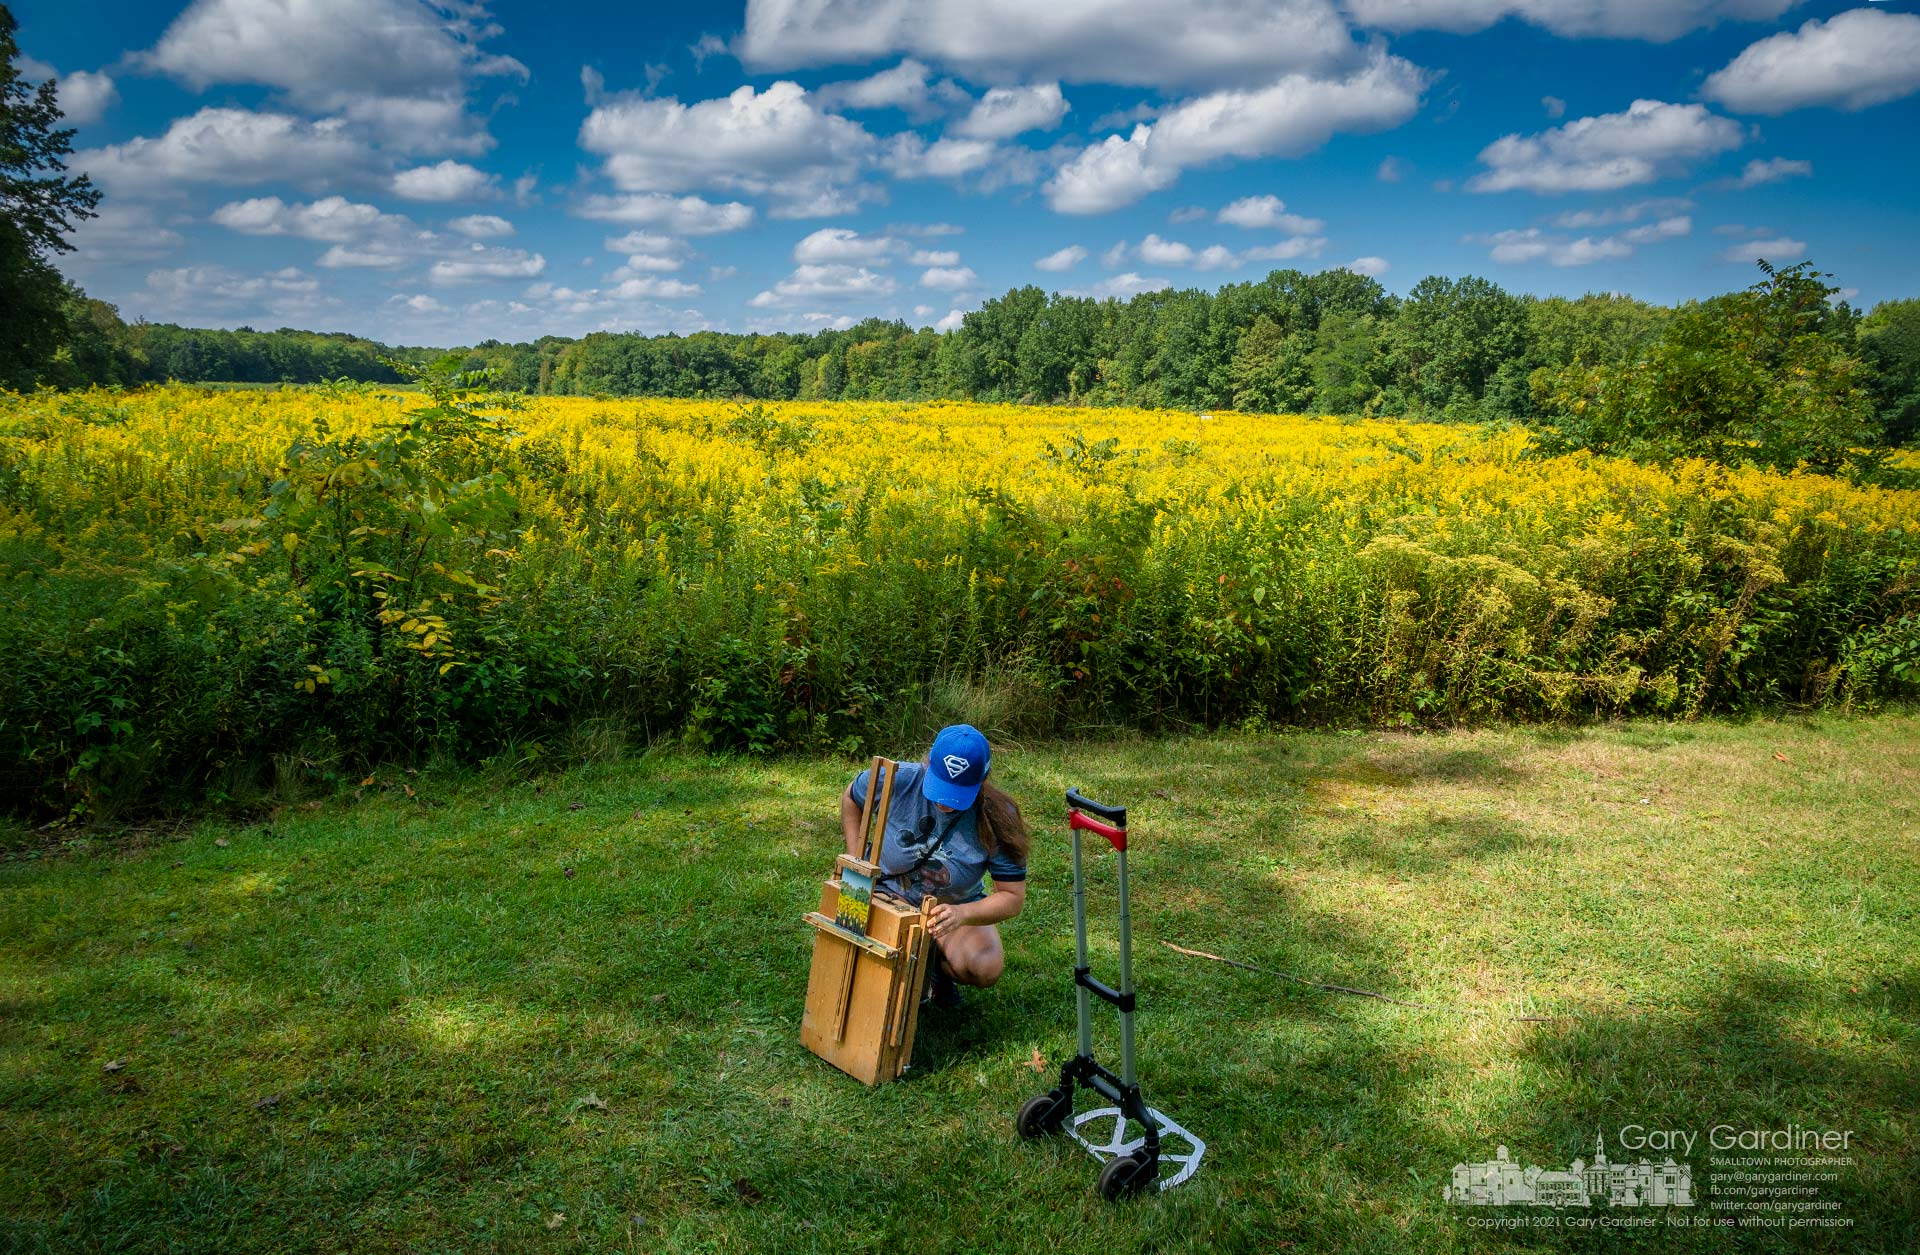 An artist puts away her portable easel, paints, and brushes after a morning with other painters at one of the goldenrod fields in Sharon Woods Metro Park. My Final Photo for Sept. 16, 2021.